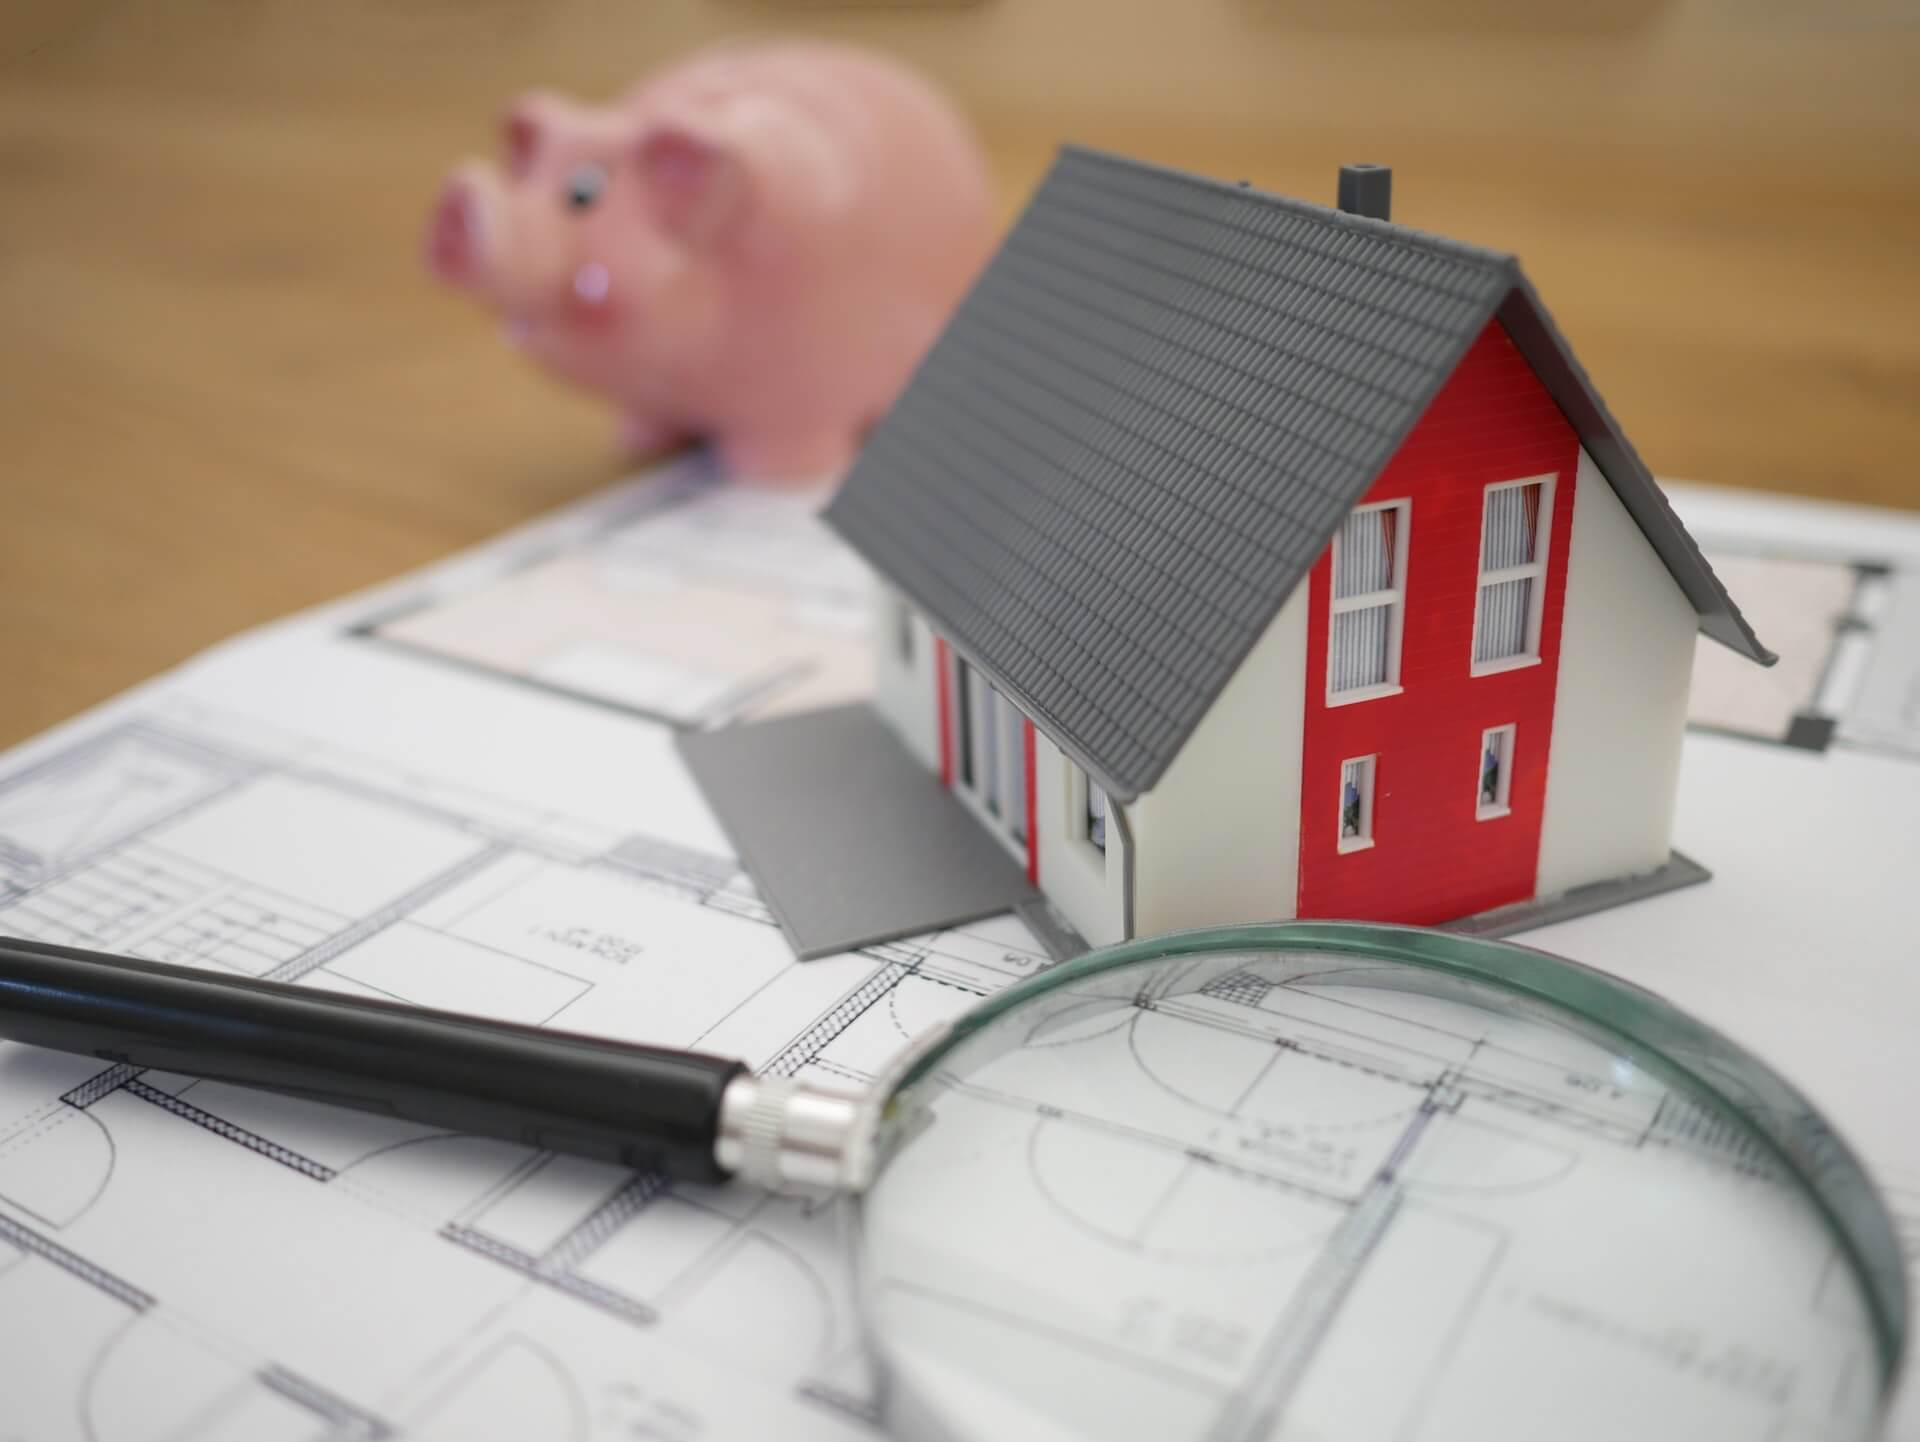 5 Features to Keep in Mind Before Choosing a Right Real Estate Investment Opportunity